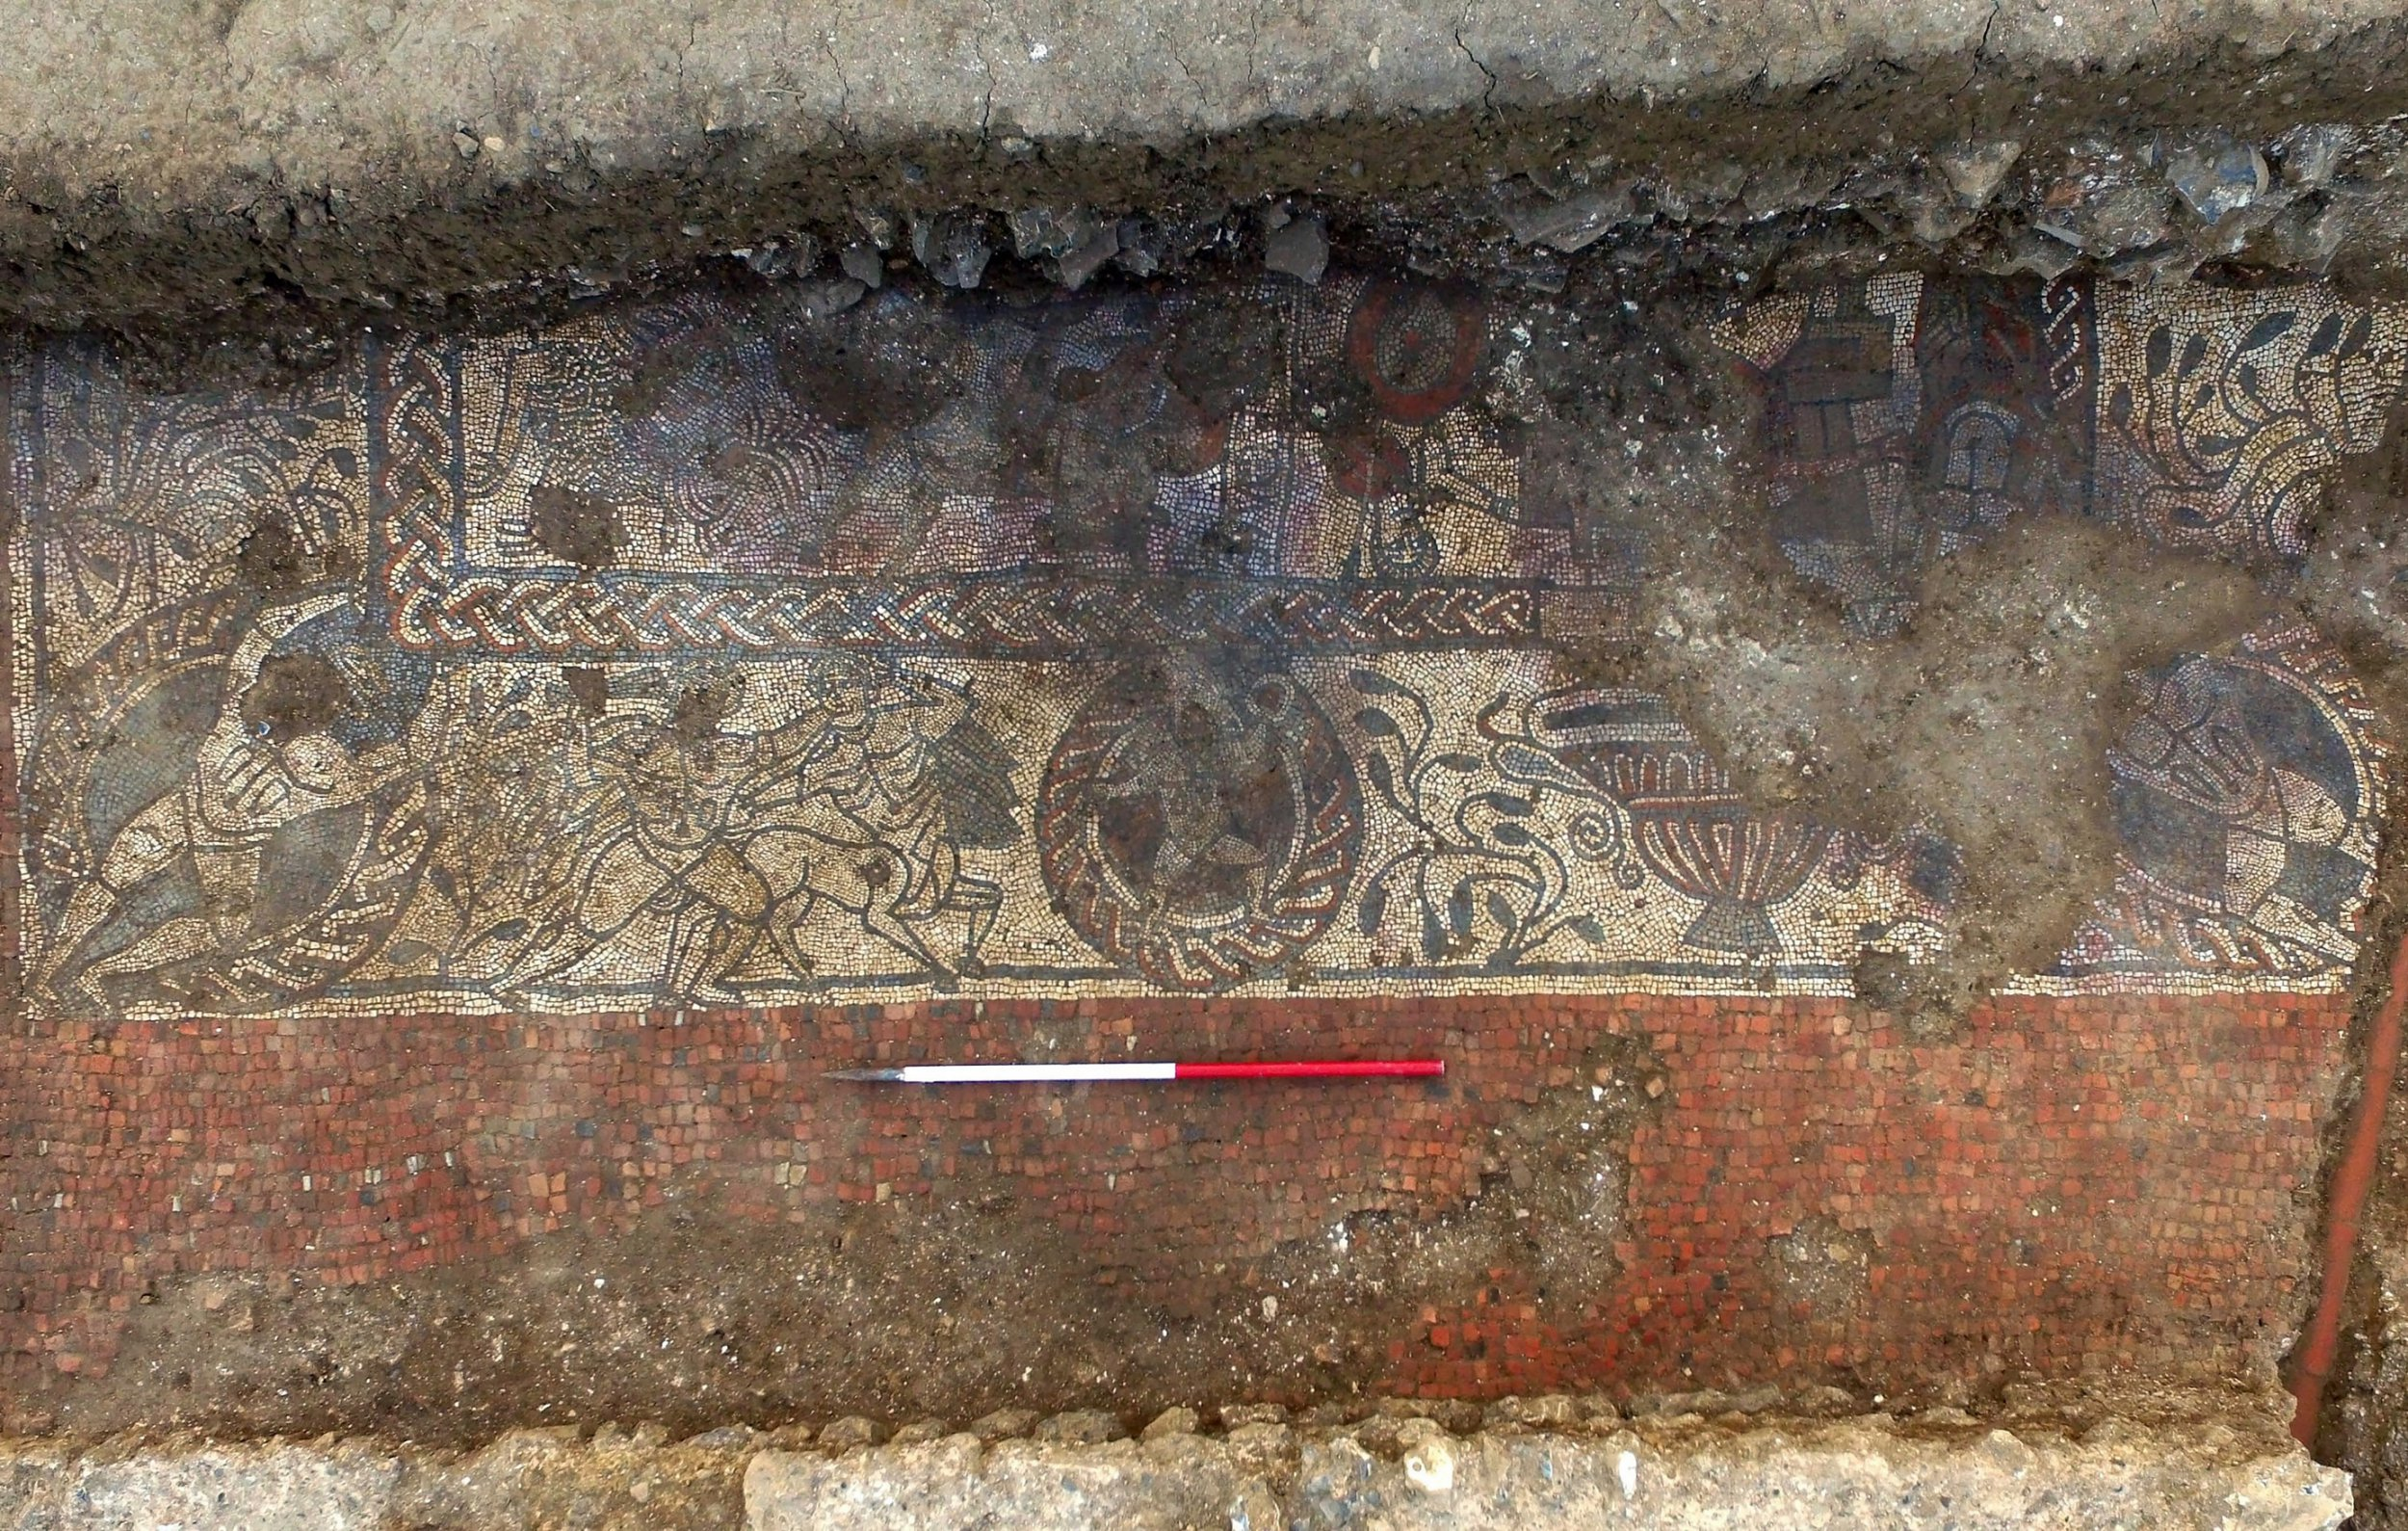 Amateur archaeologists discover amazing 1,600-year-old Roman mosaic